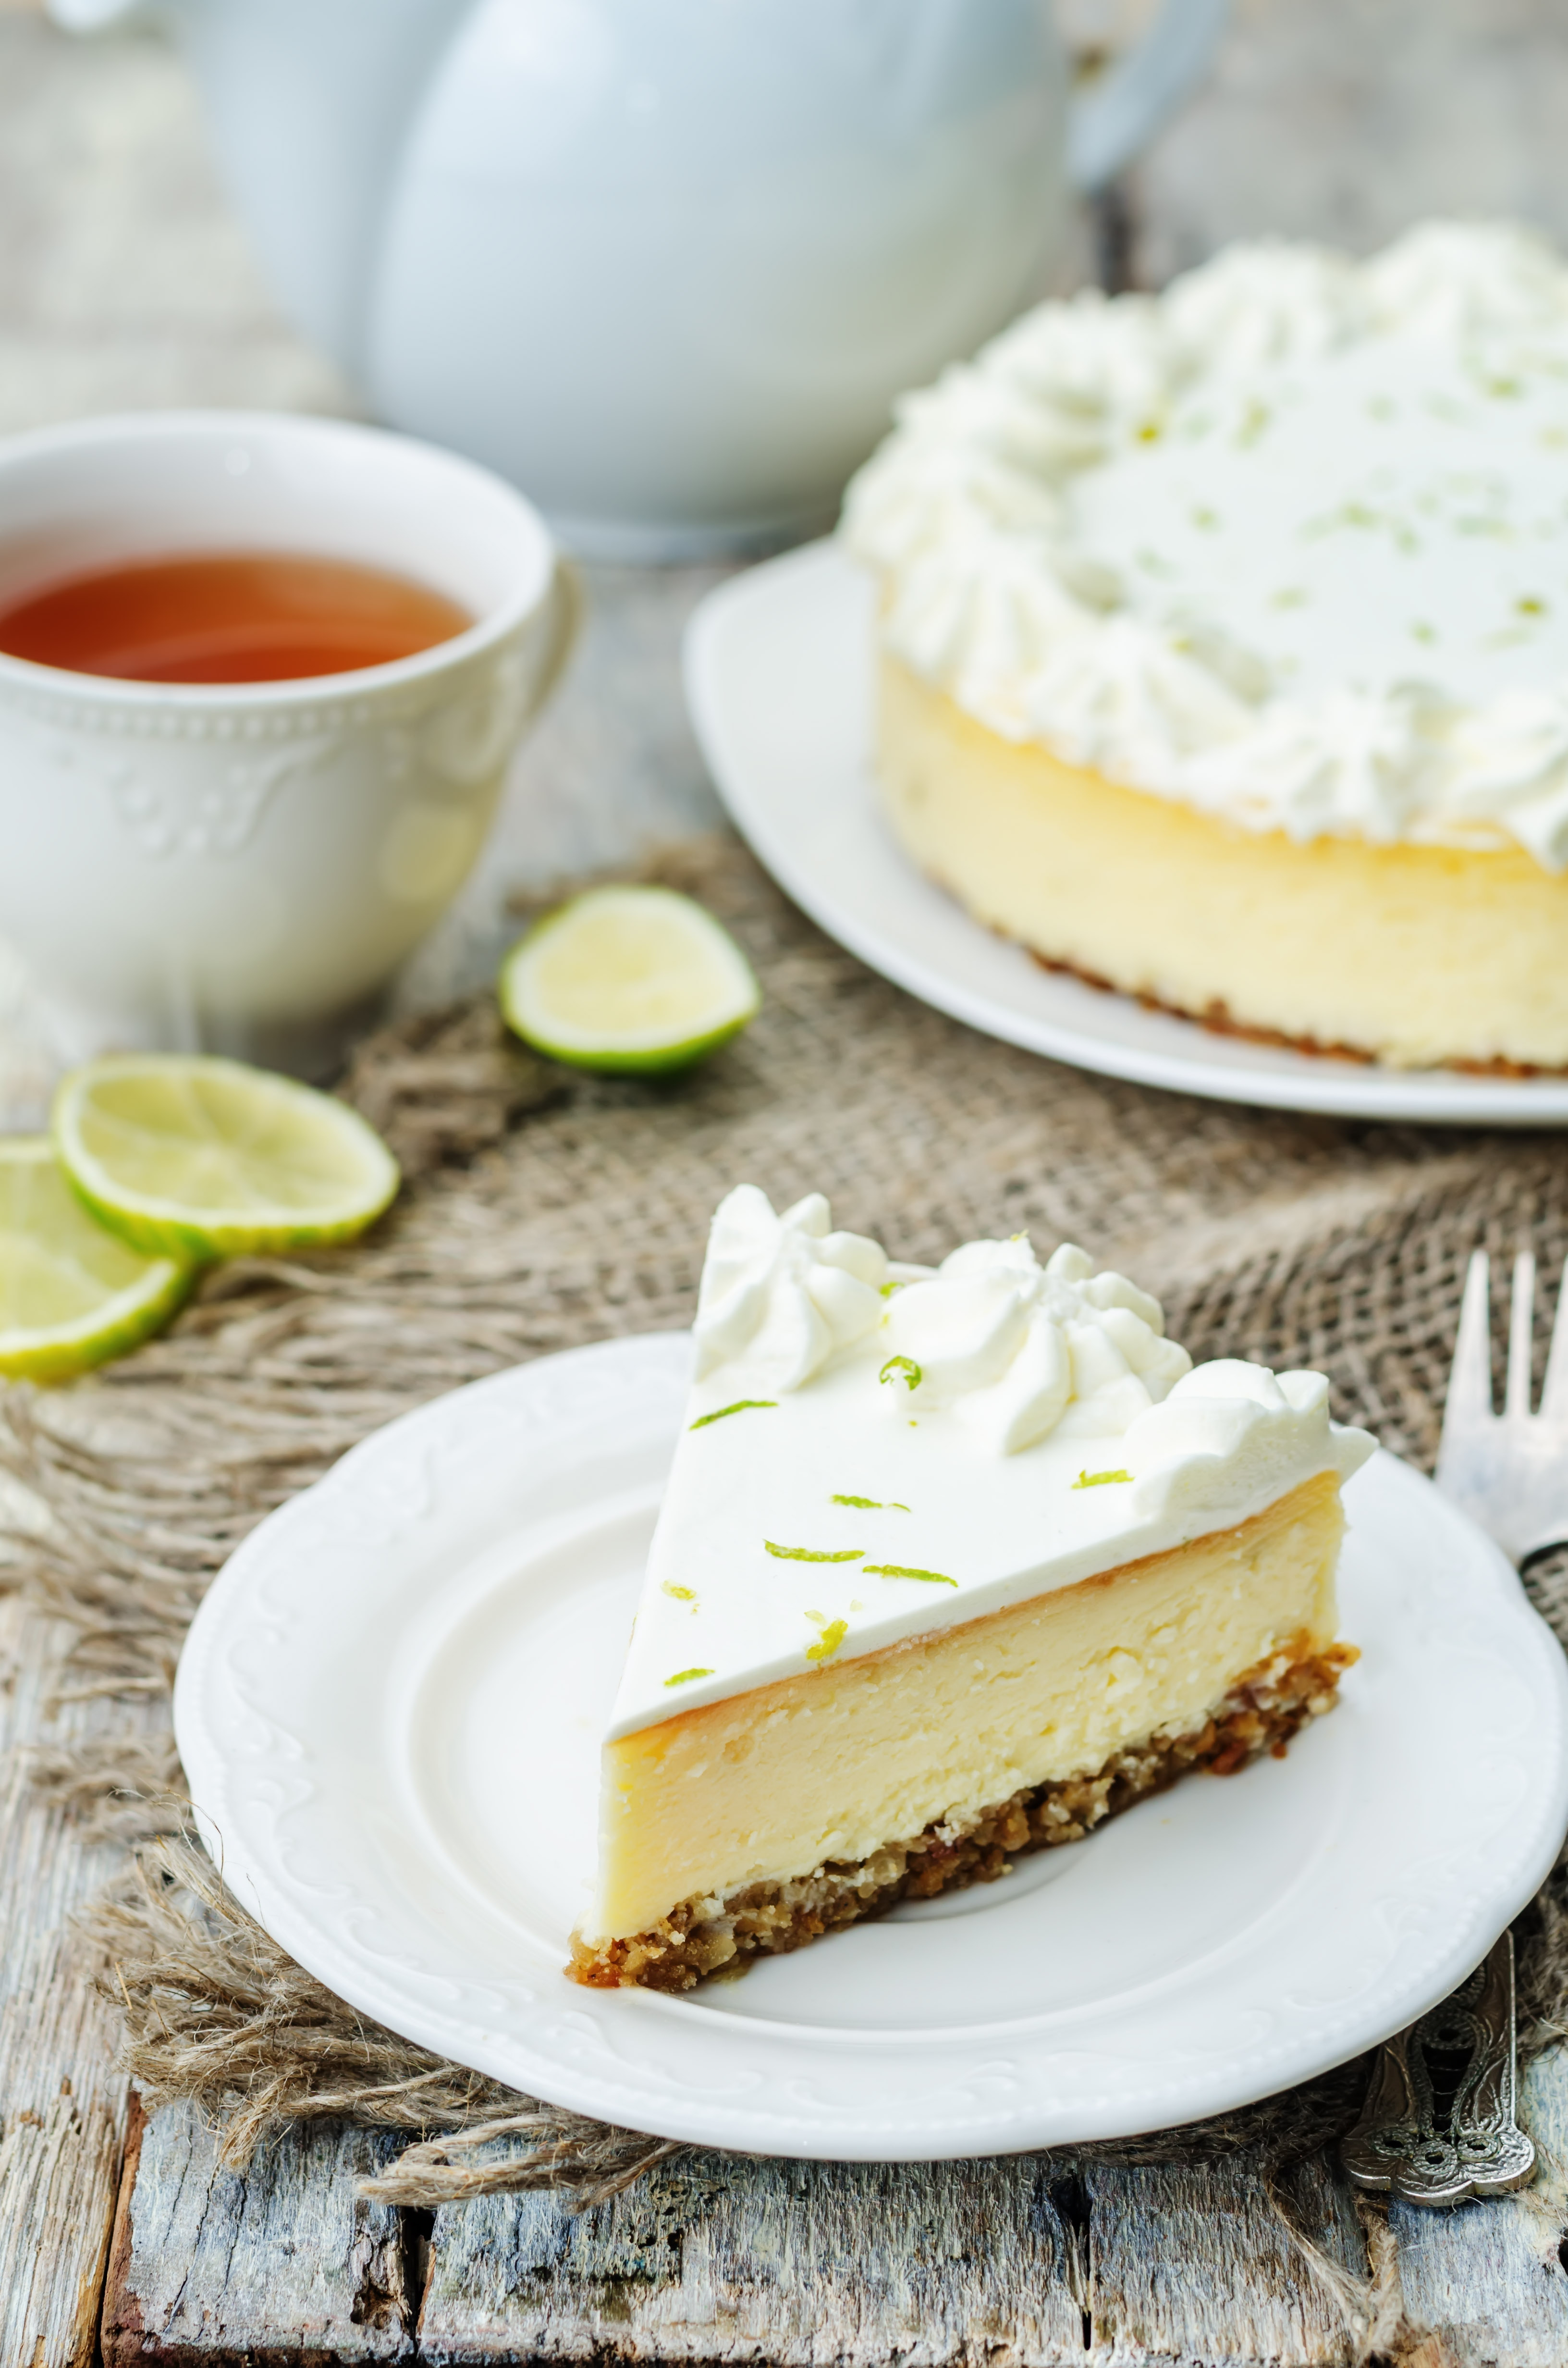 lime cheesecake on a white wood background. toning. selective focus